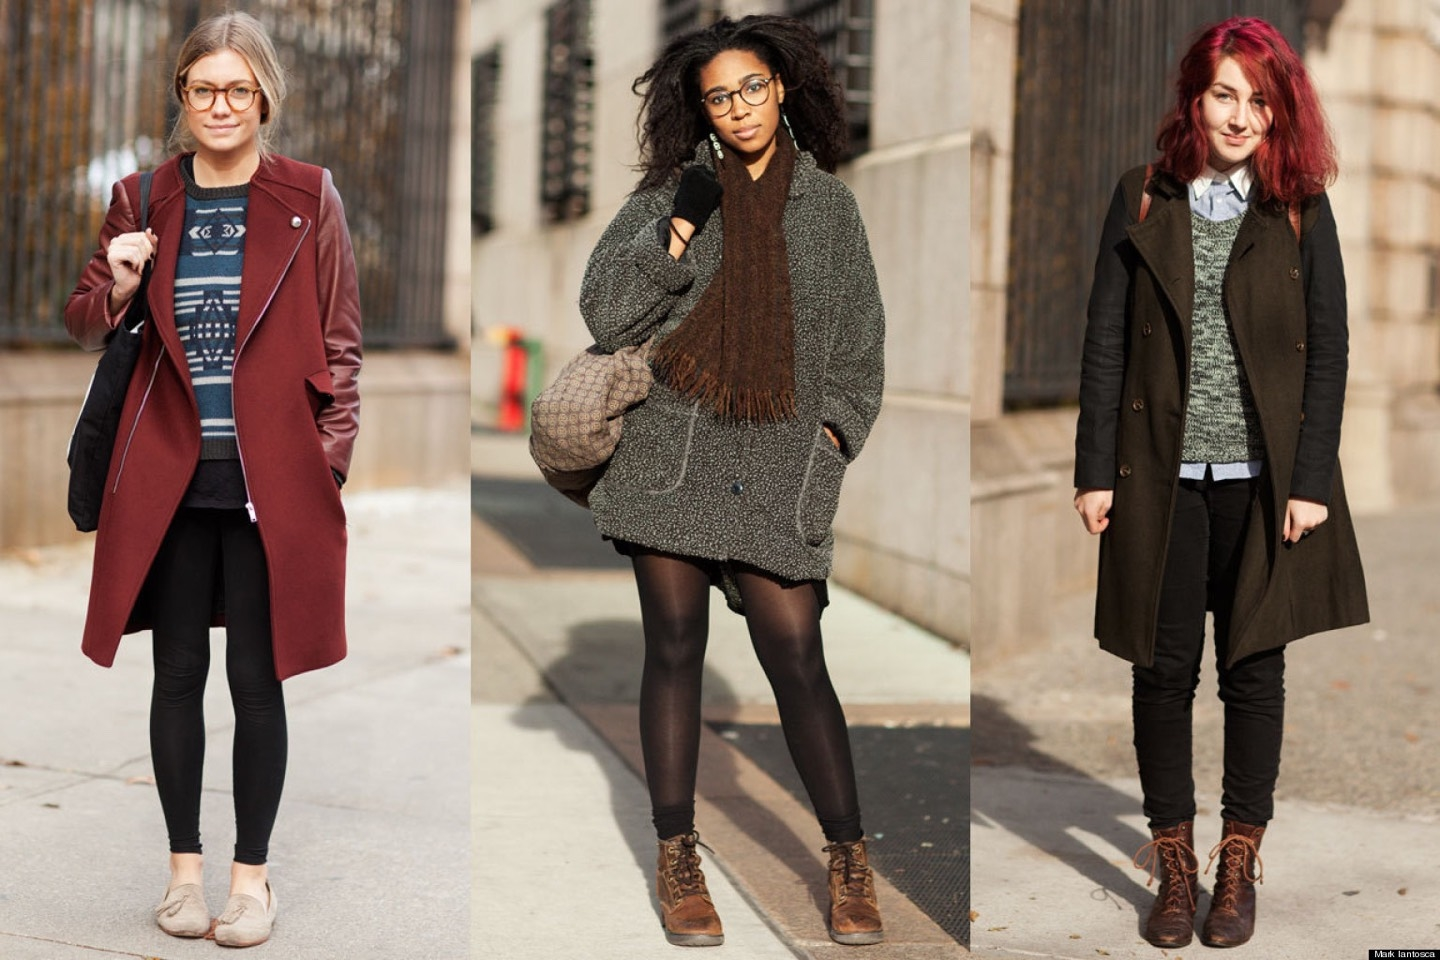 hipster fall fashion tumblr - photo #4